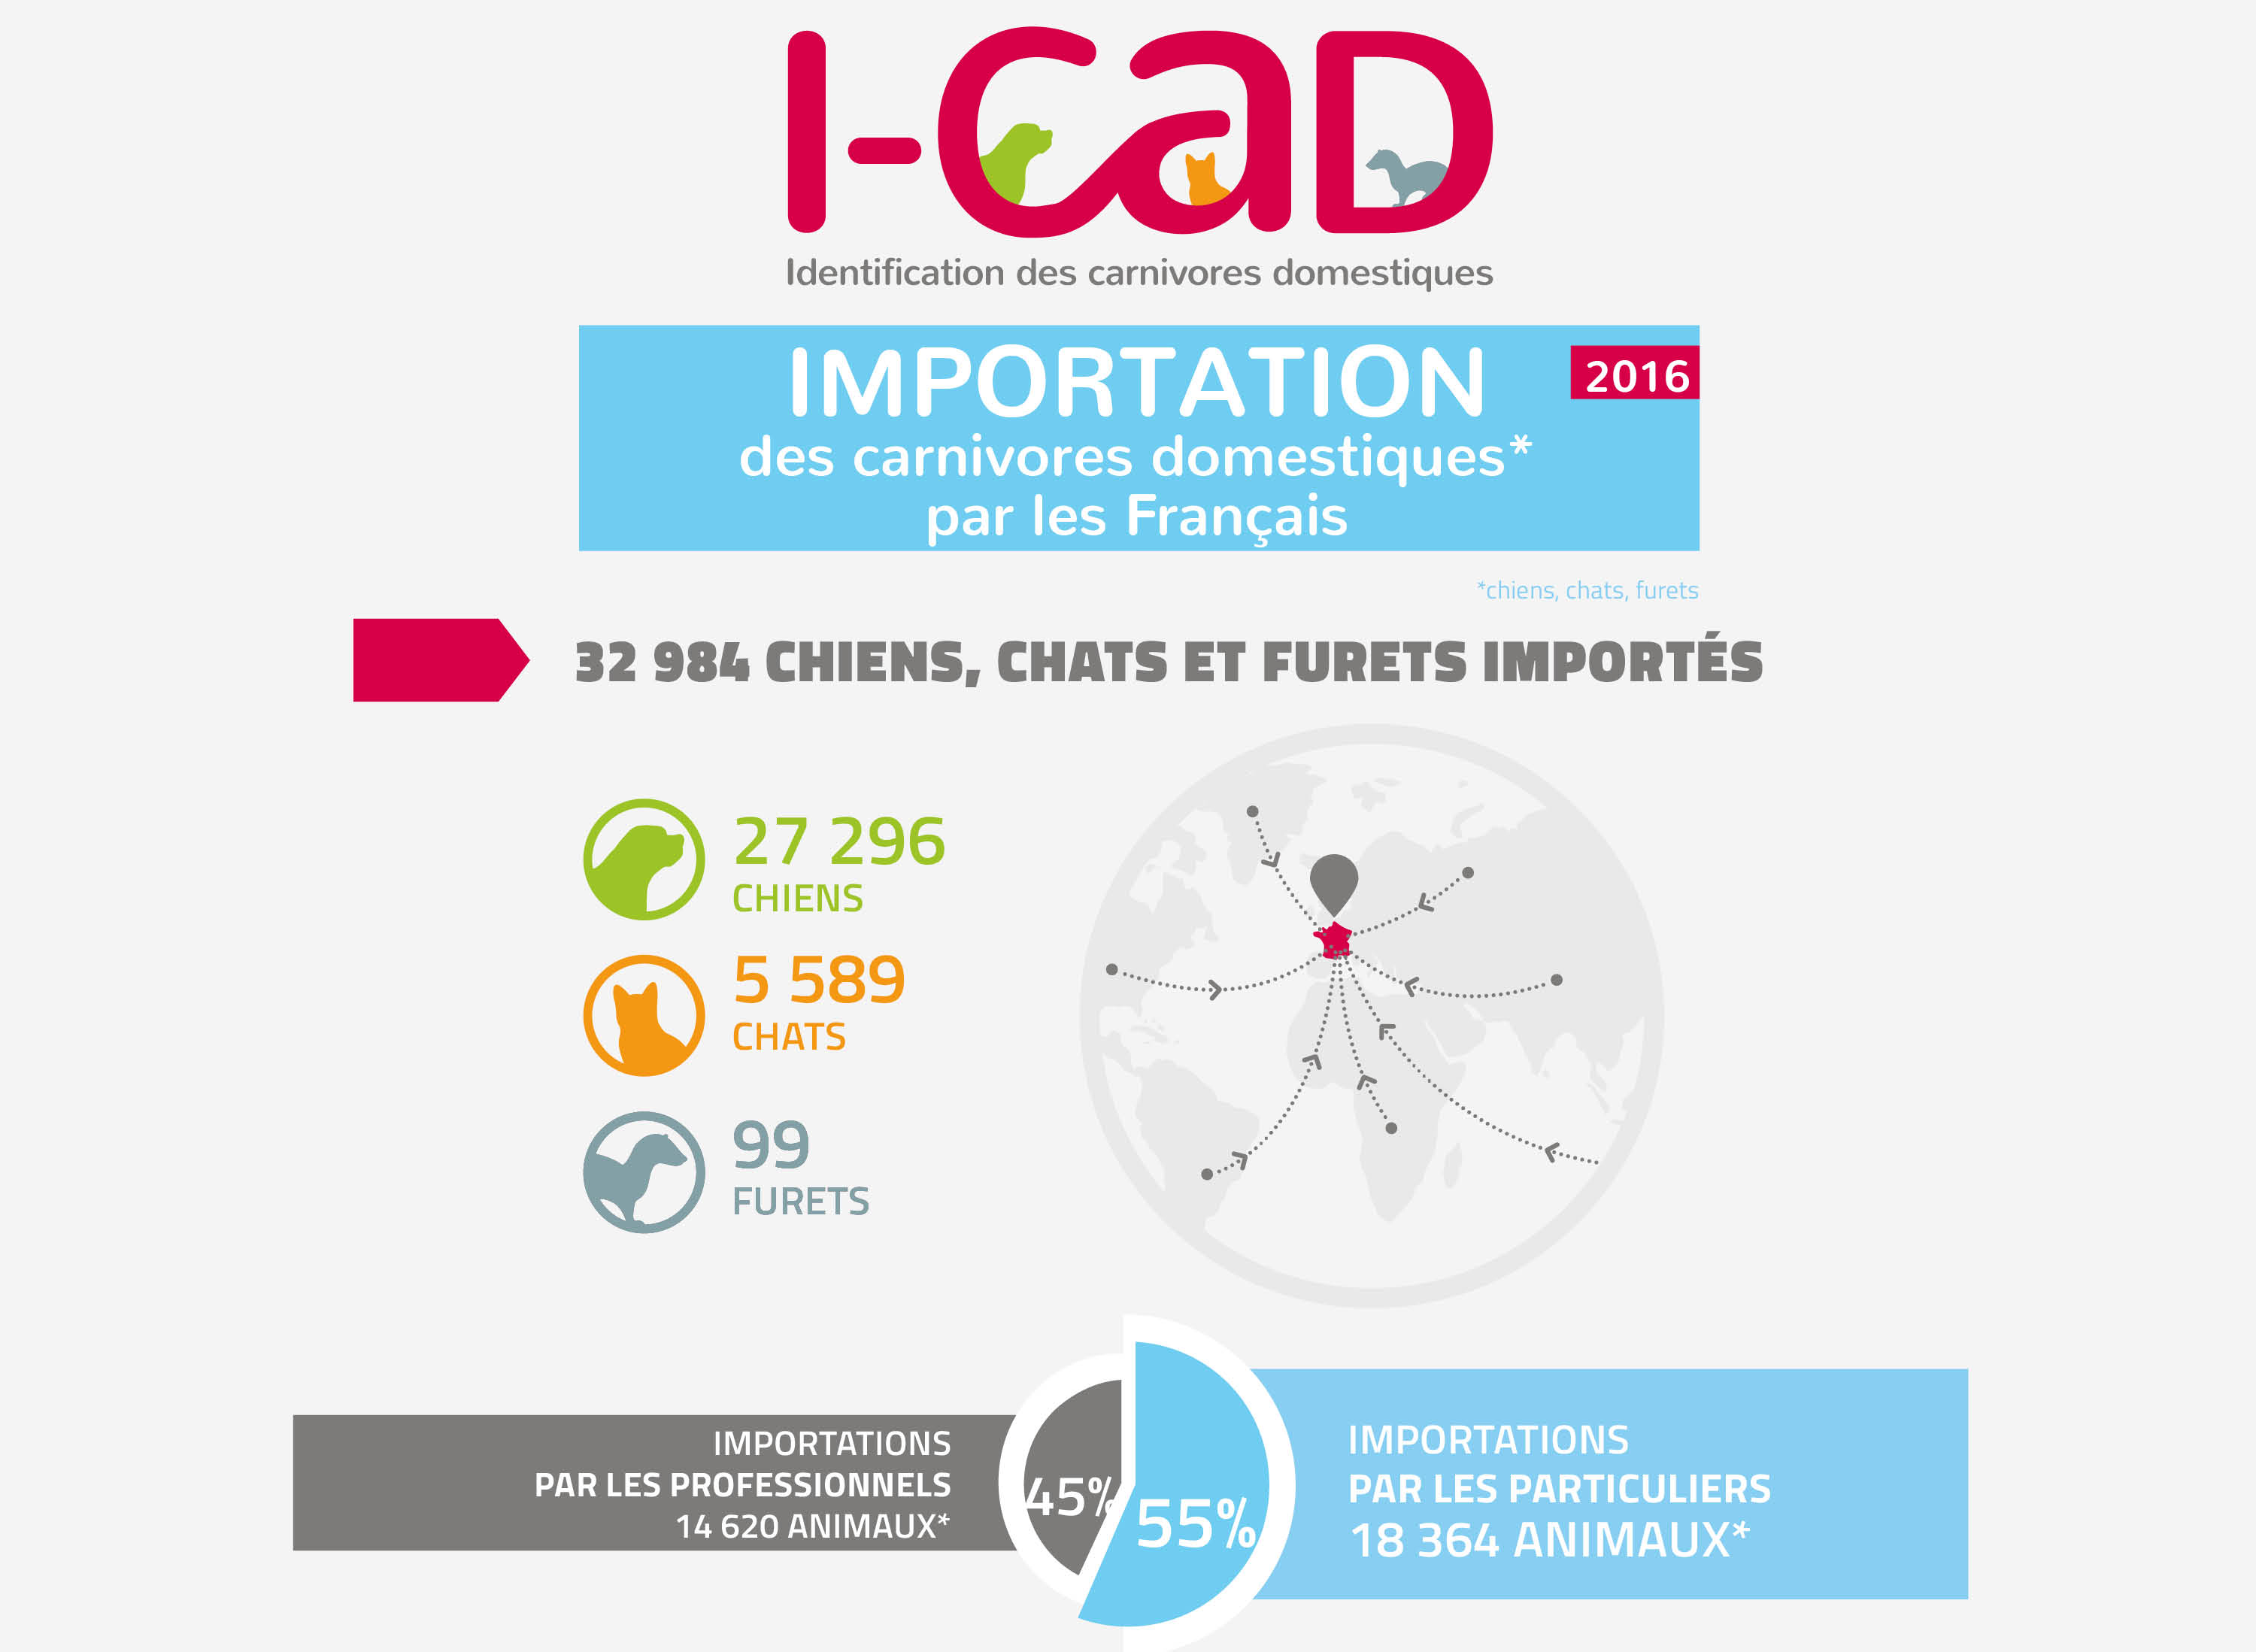 centrale canine icad